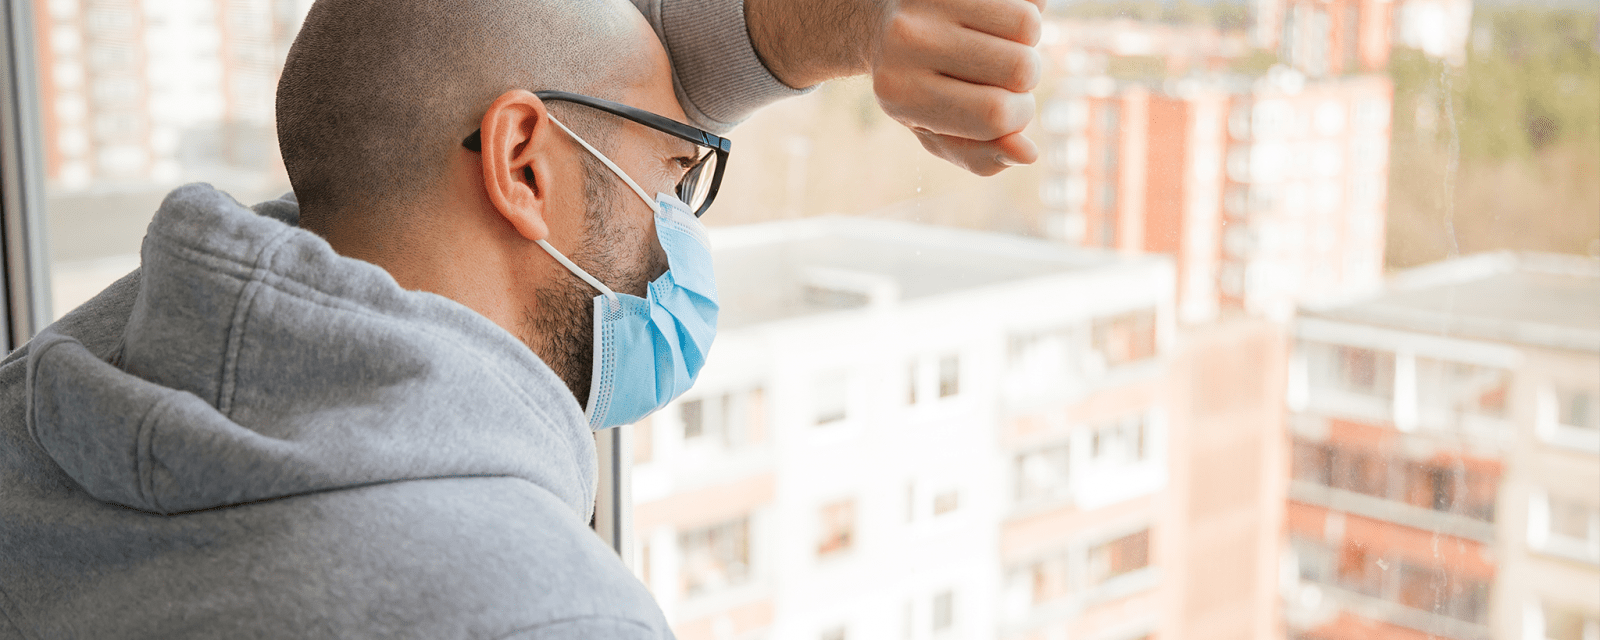 Providing rental relief during the Covid-19 Pandemic